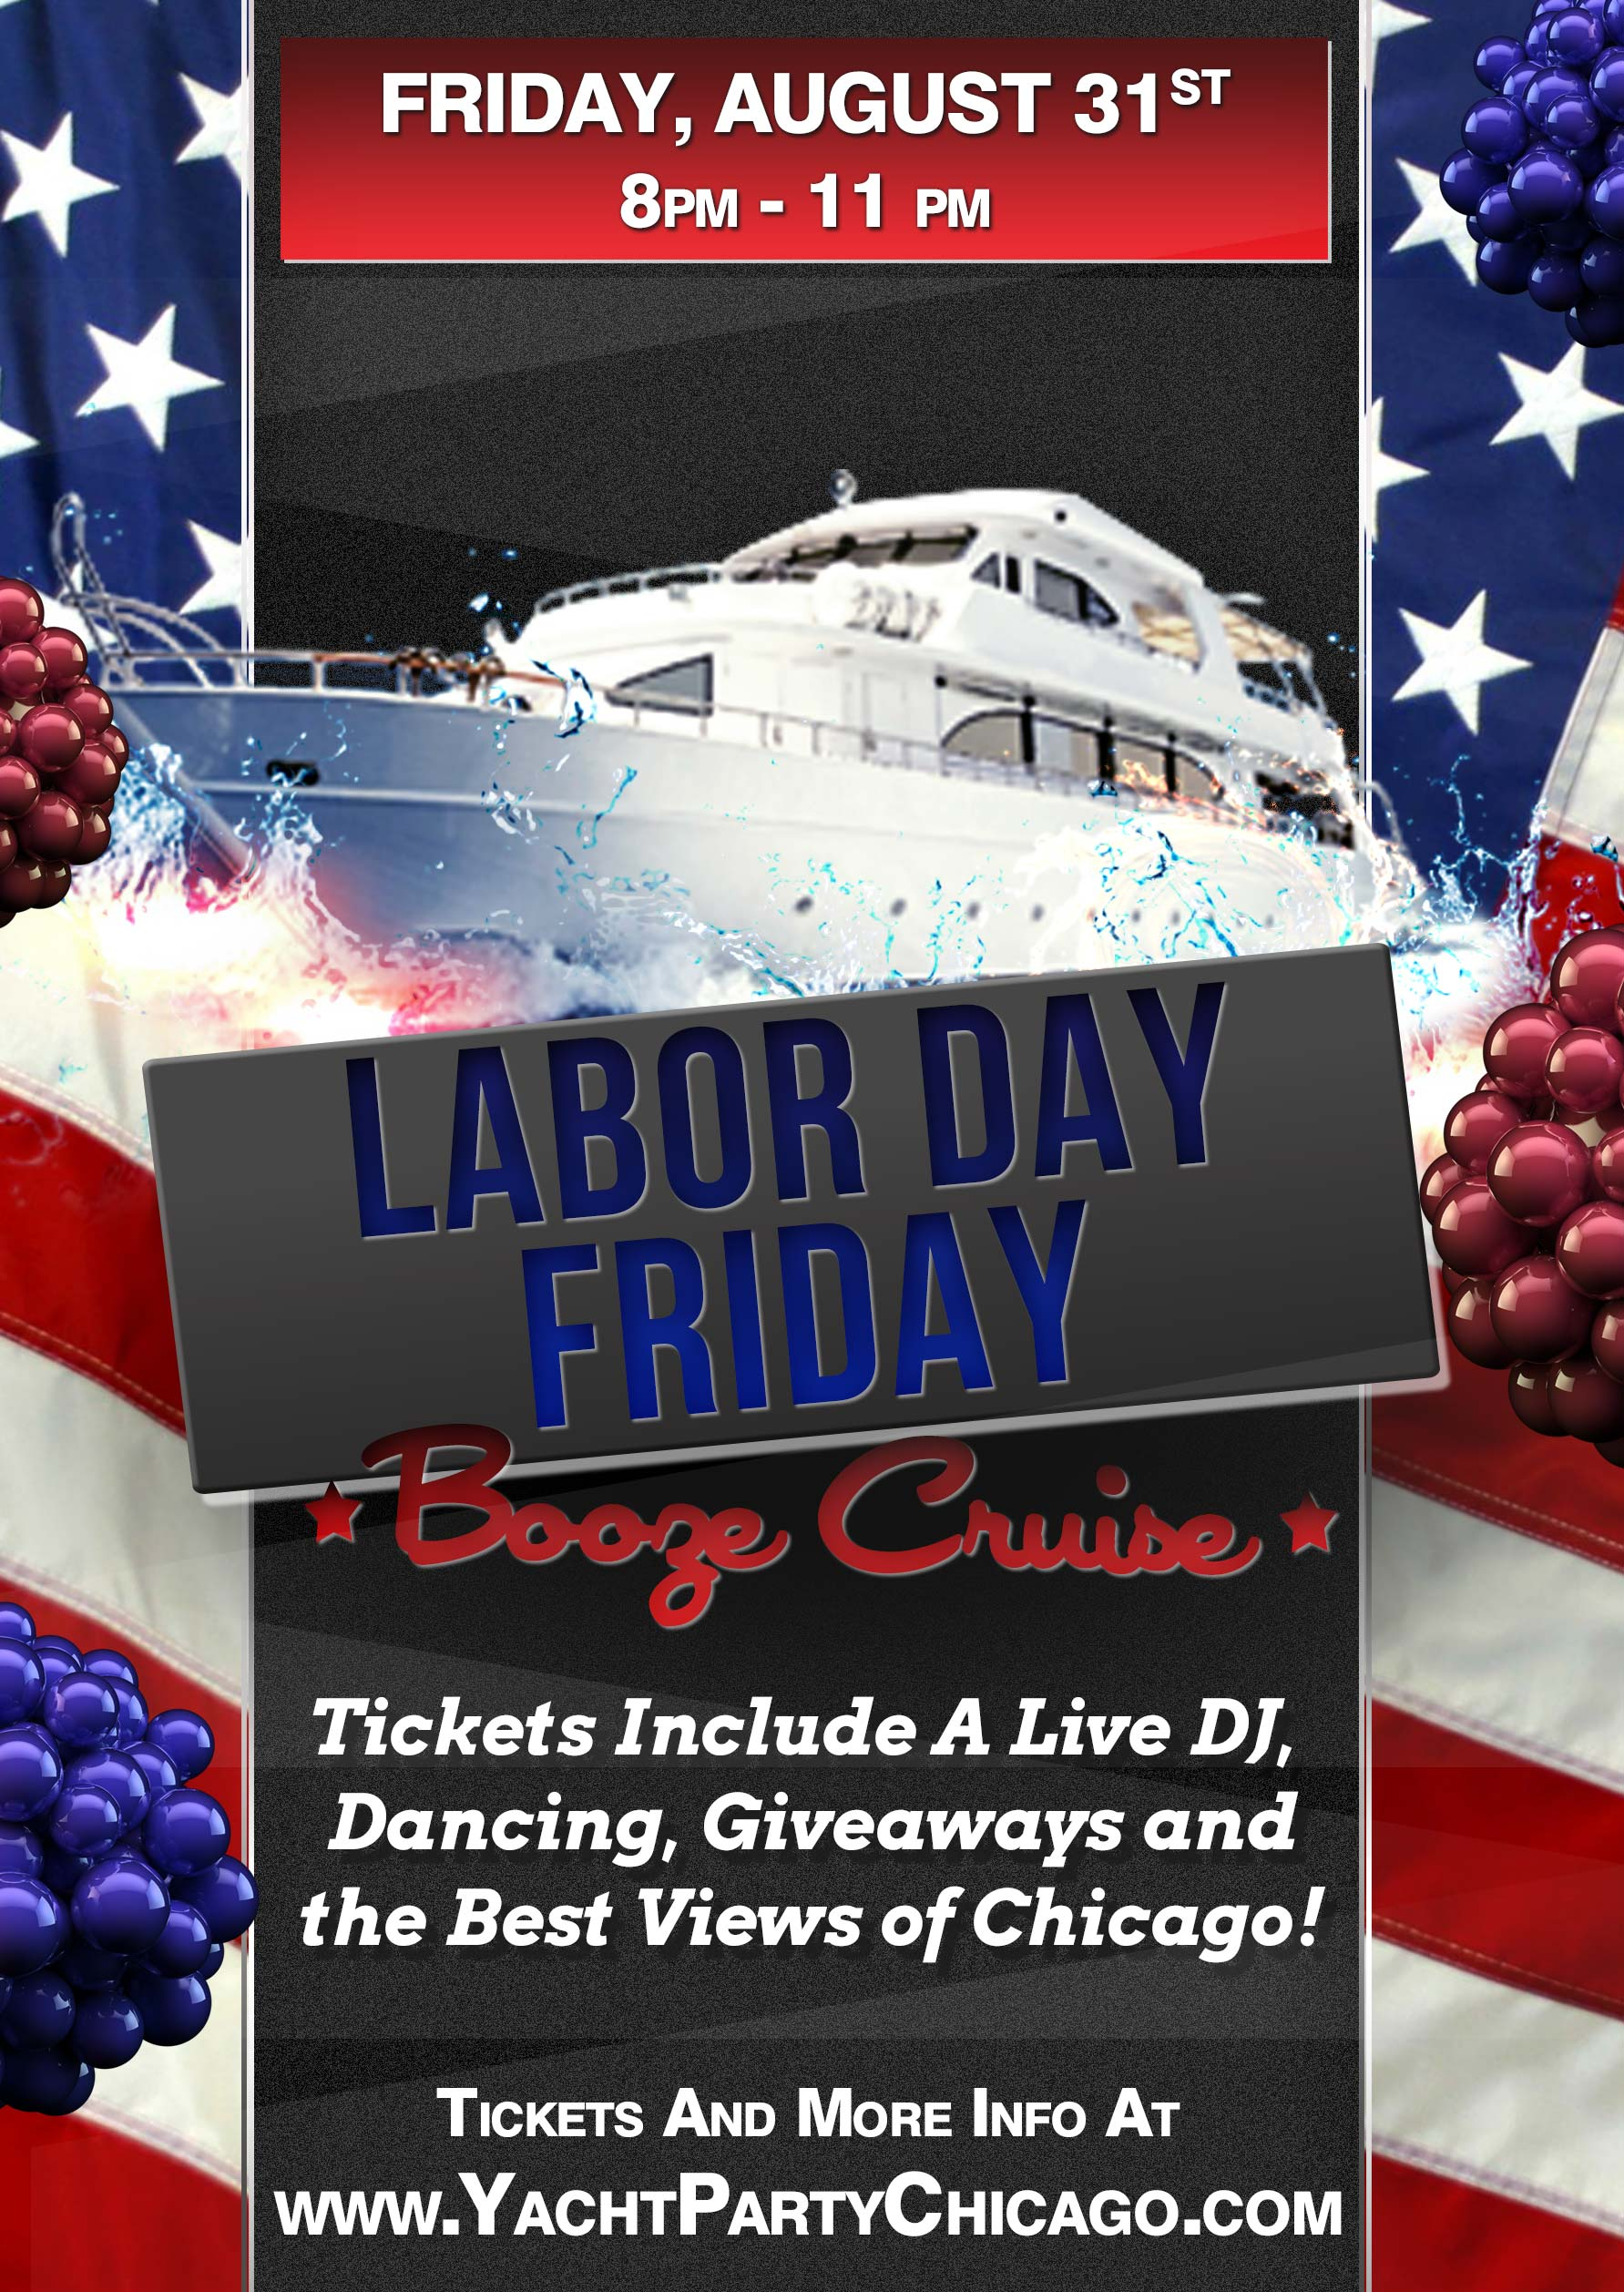 Labor Day Friday Booze Cruise Party - Tickets include a Live DJ, Dancing, Giveaways, and the best views of Chicago!